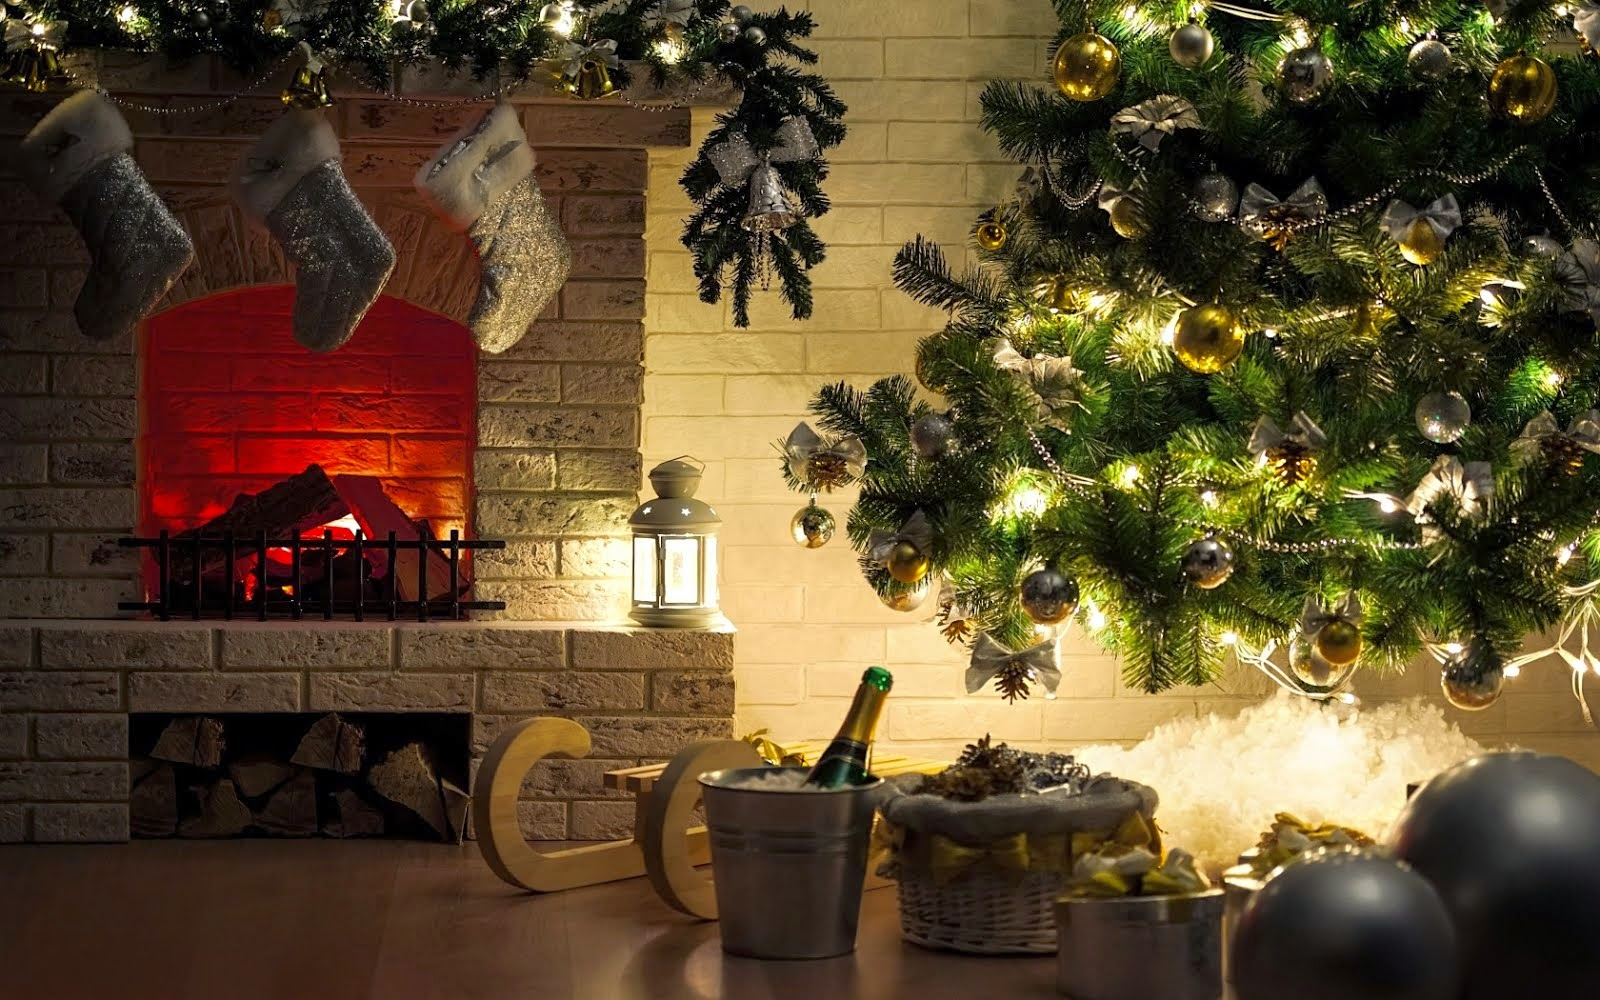 Sweet fireplace during the holidays